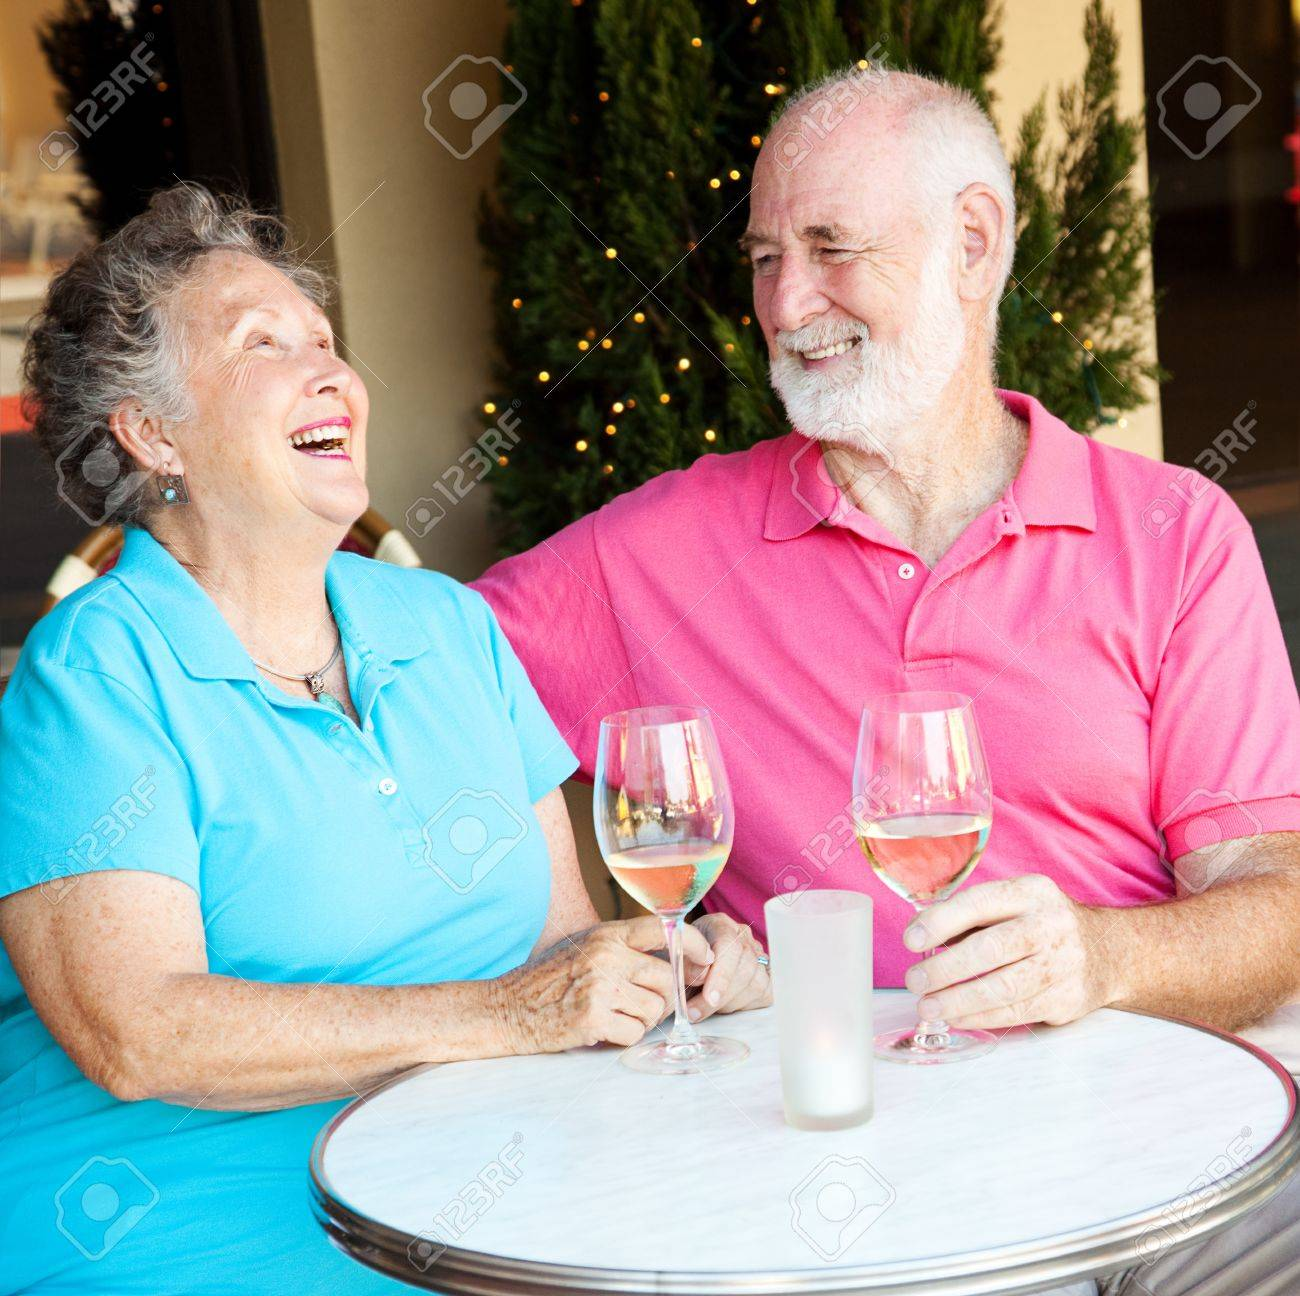 Senior couple on a date, laughing together over wine. Stock Photo - 13735946